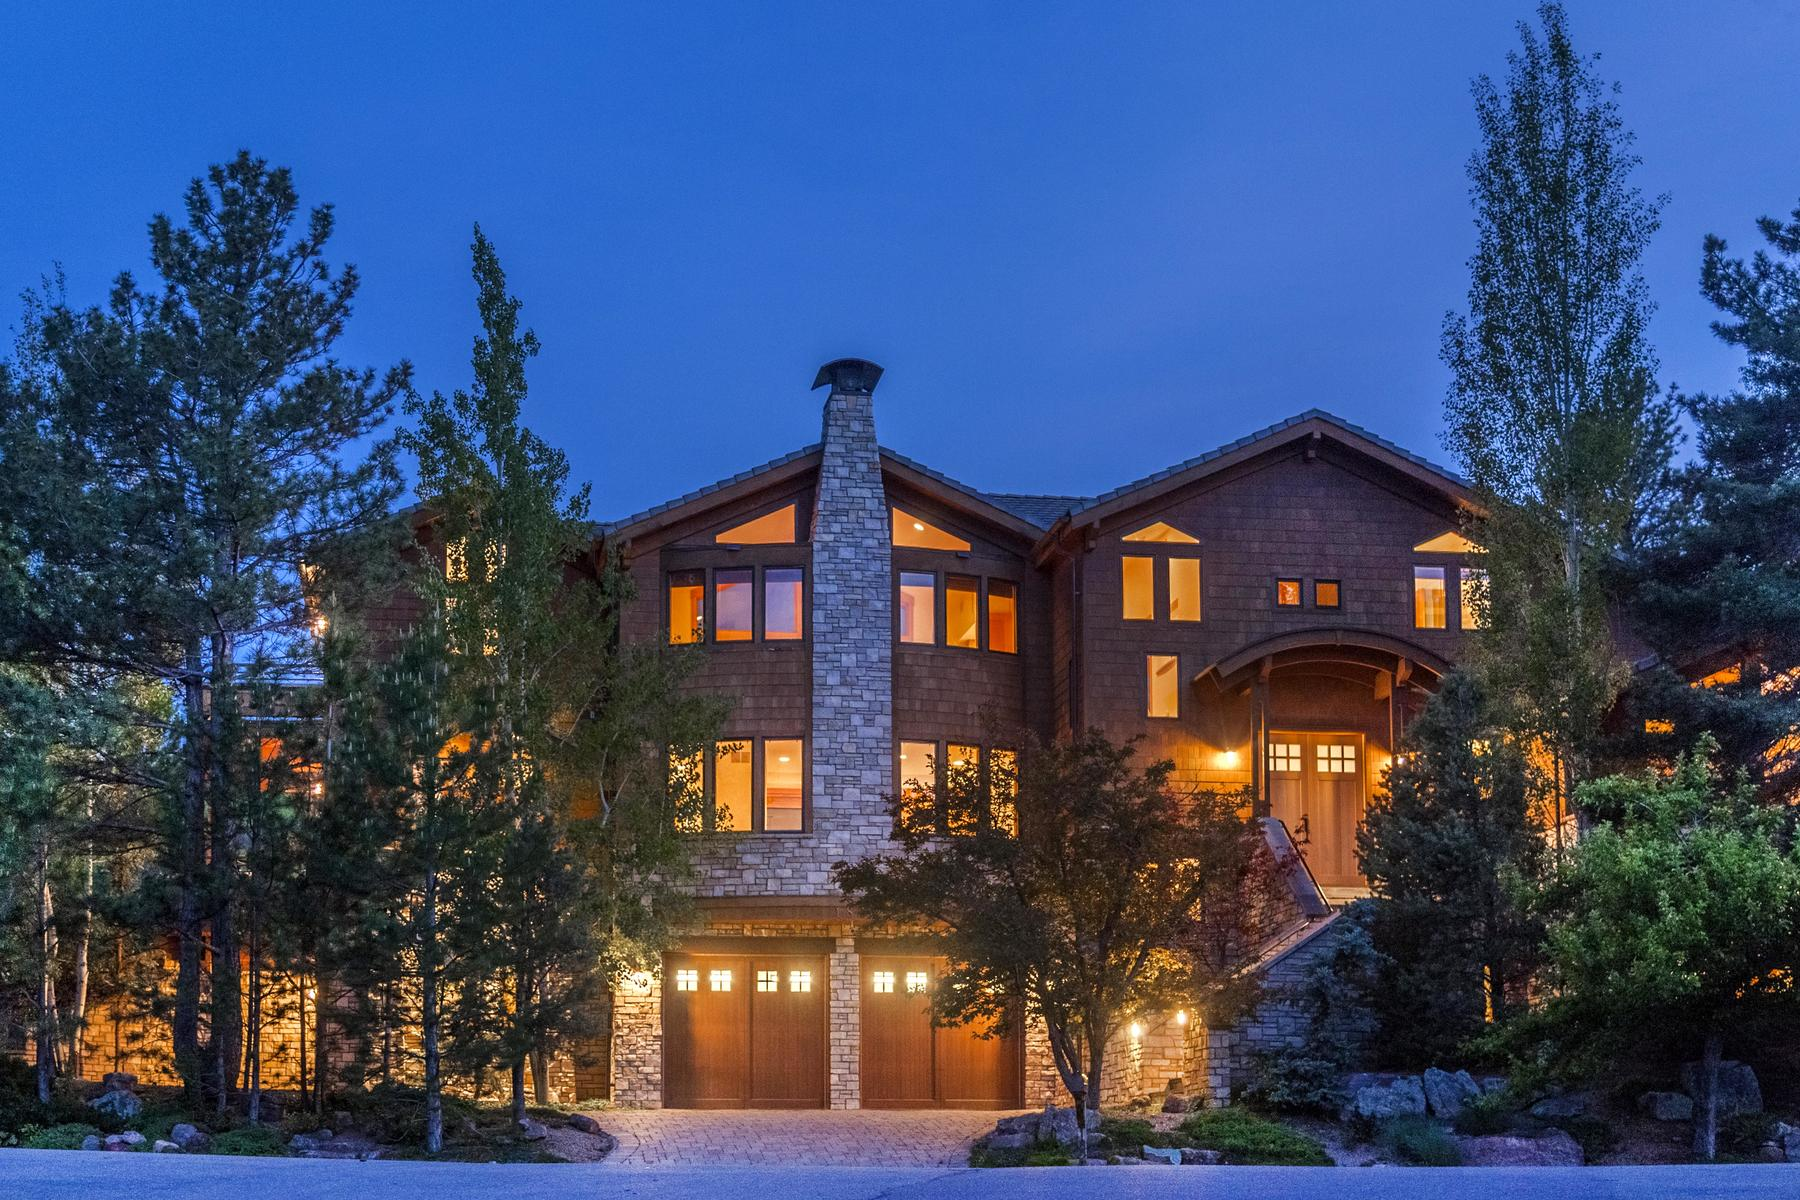 Single Family Home for Active at Masterpiece Backing to Chautauqua Trails 1820 Deer Valley Rd Boulder, Colorado 80305 United States